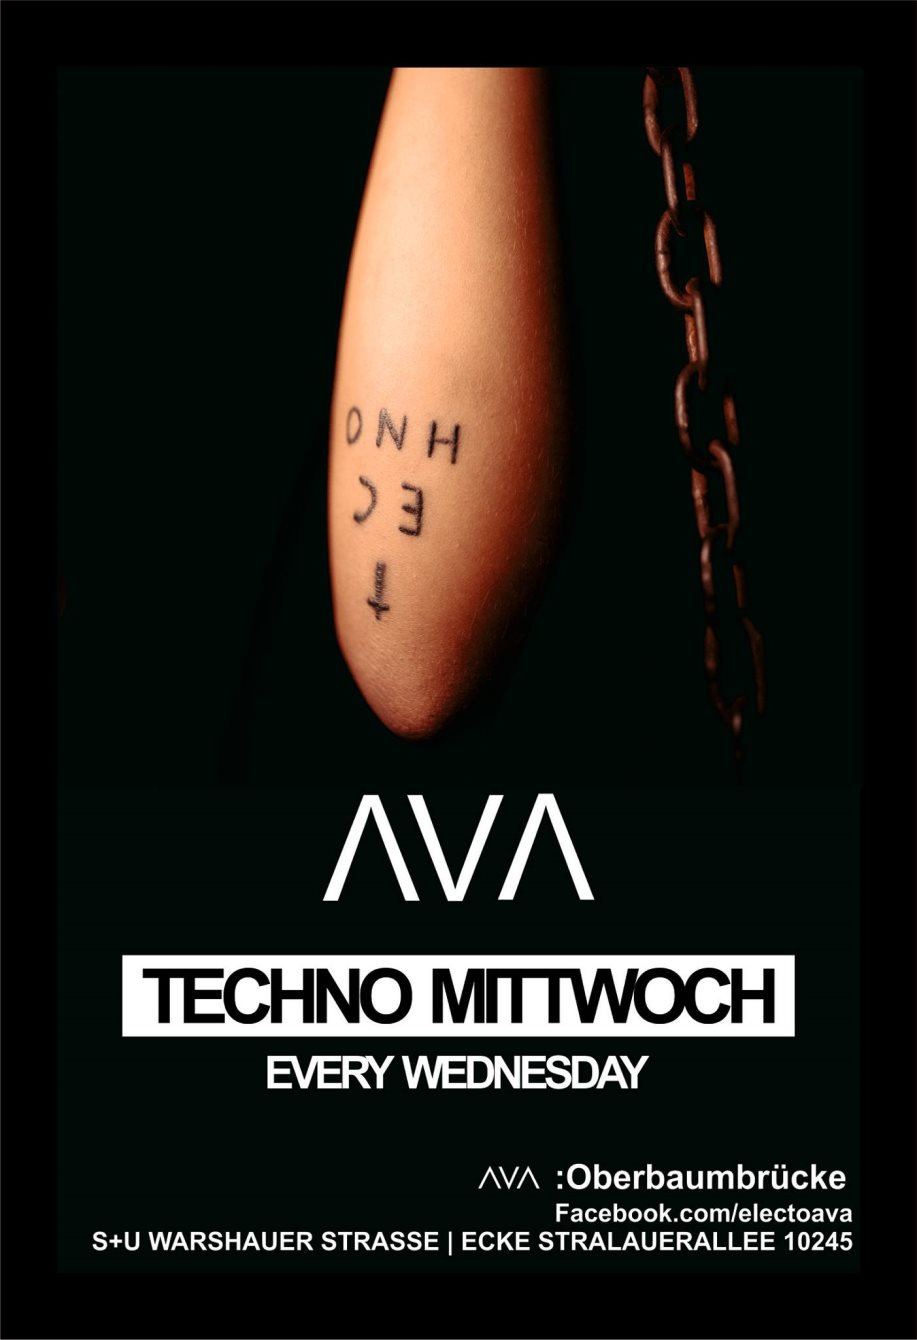 Techno Mittwoch (Two Floors) - Flyer front